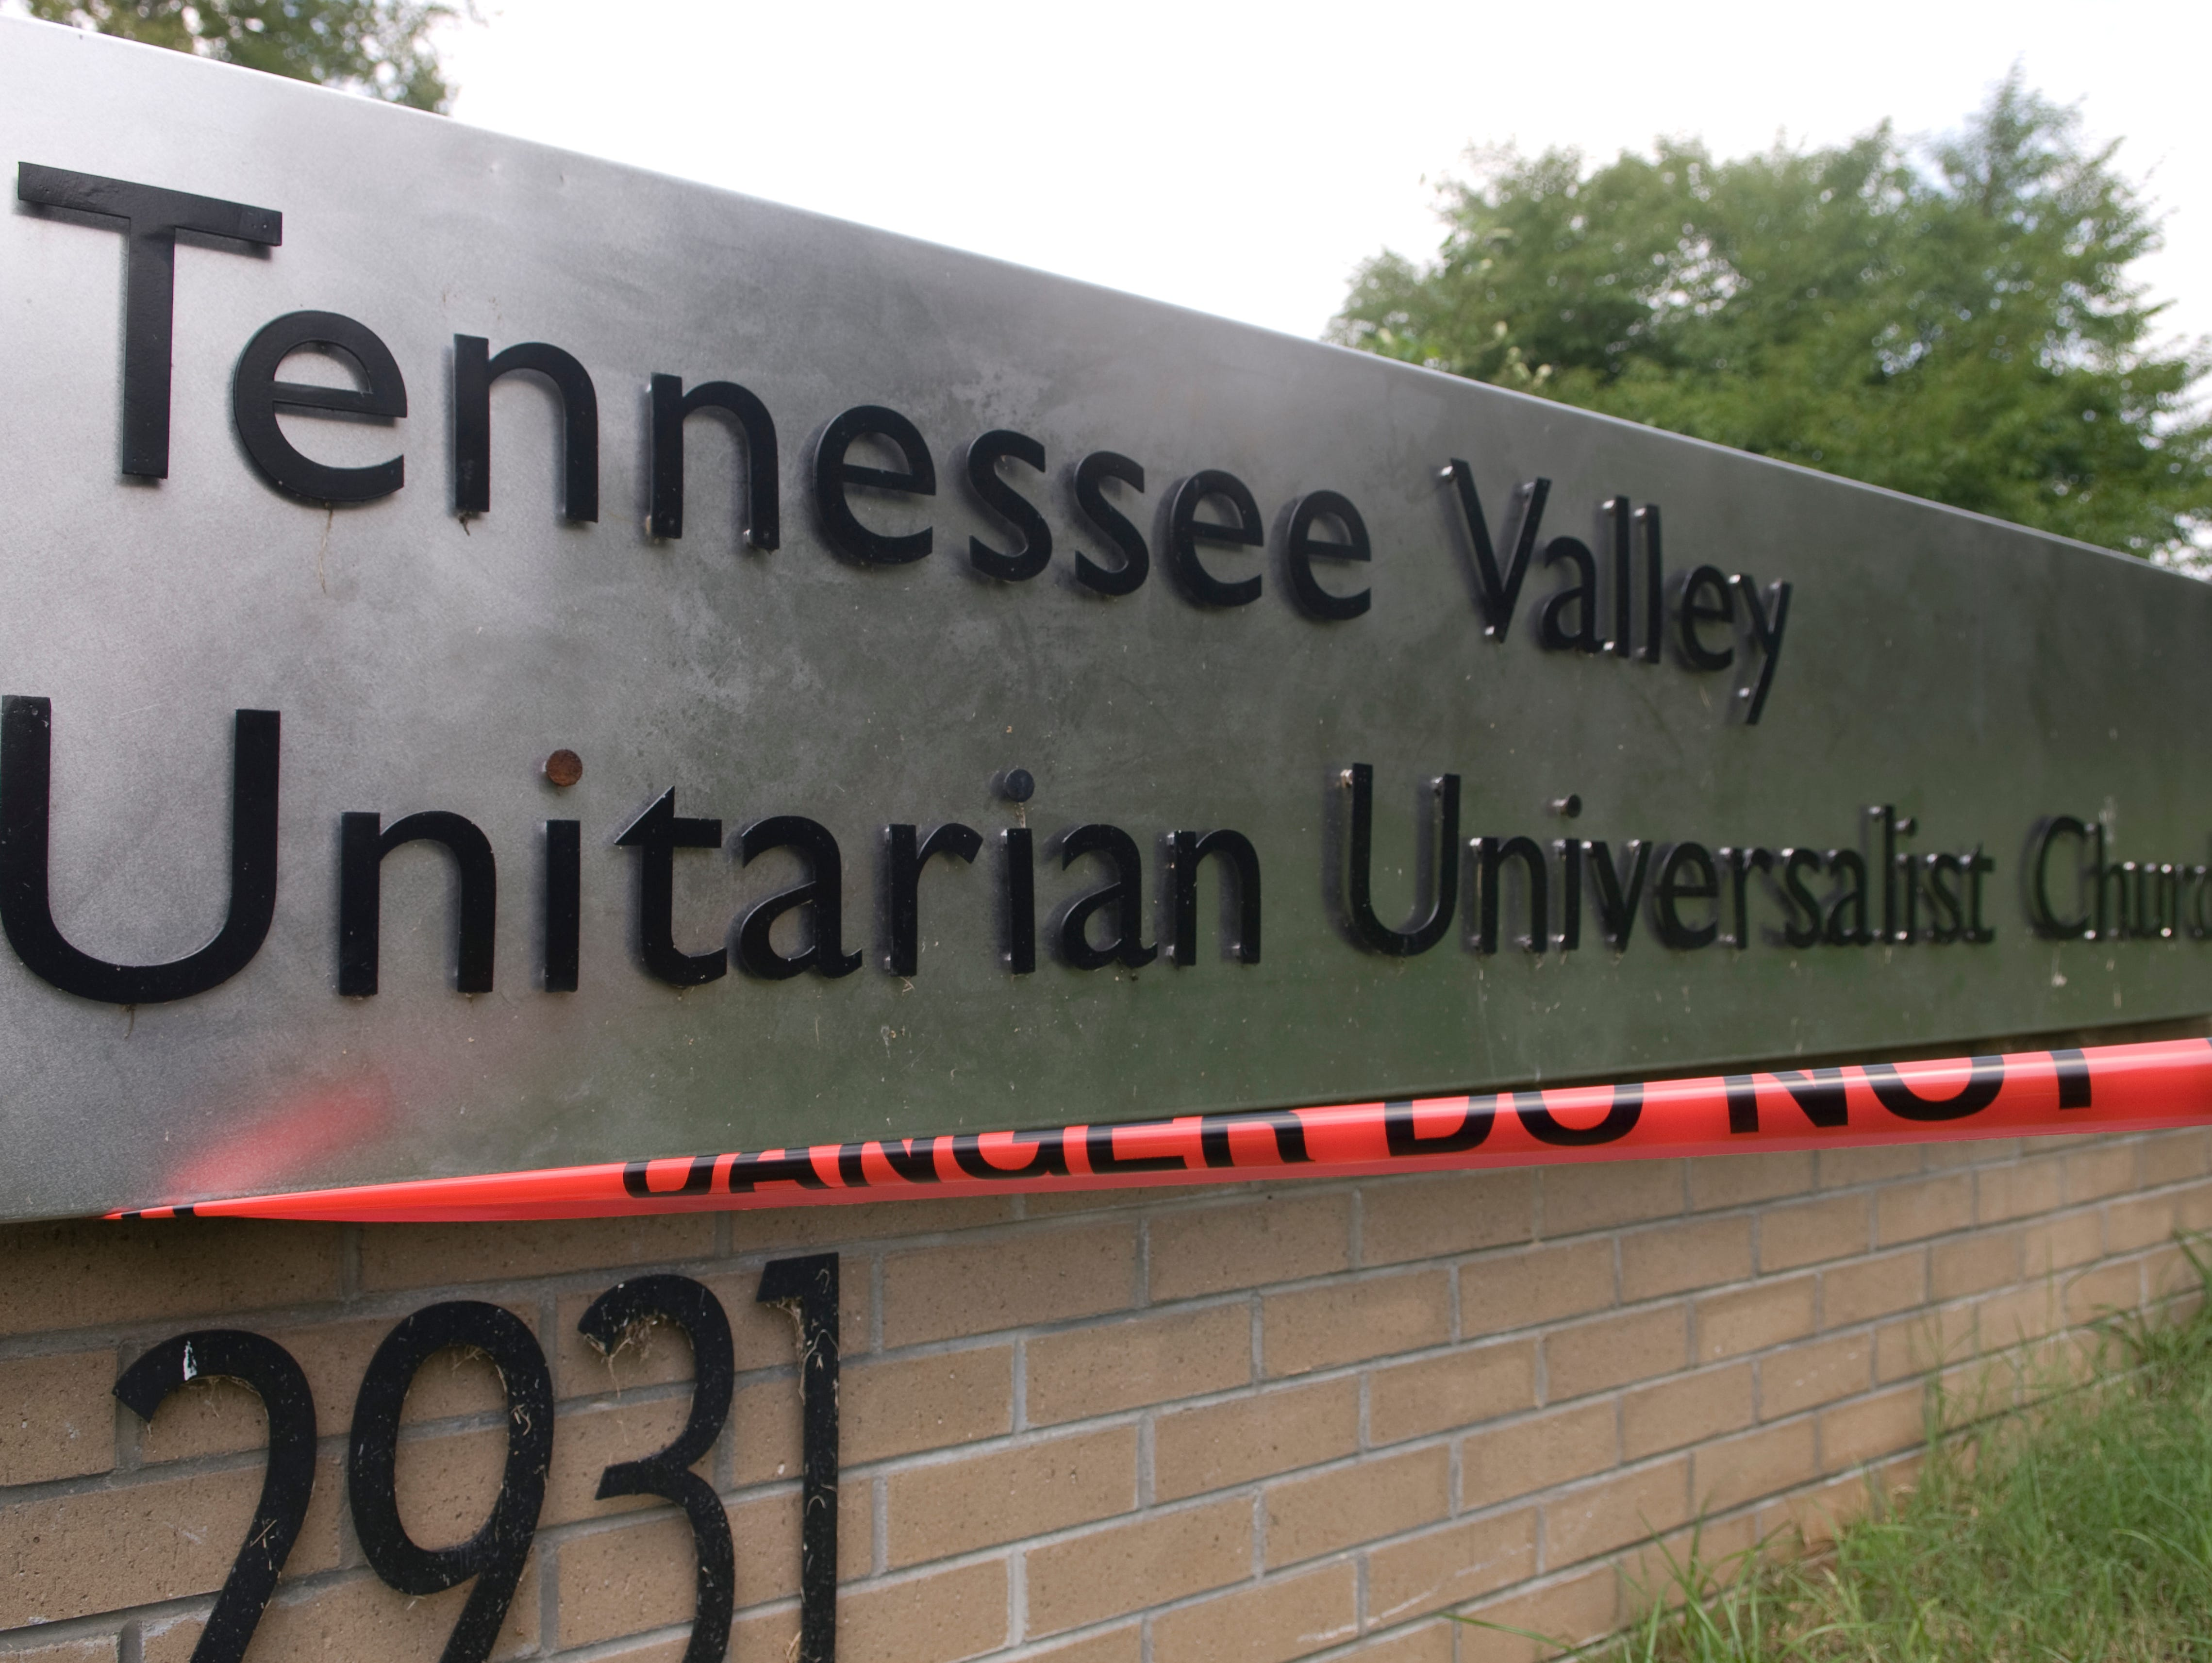 A gunman entered the Tennessee Valley Unitarian Universalist Church in Knoxville, TN Sunday, July 27, 2008, and opened fire, injuring several of the congregation.